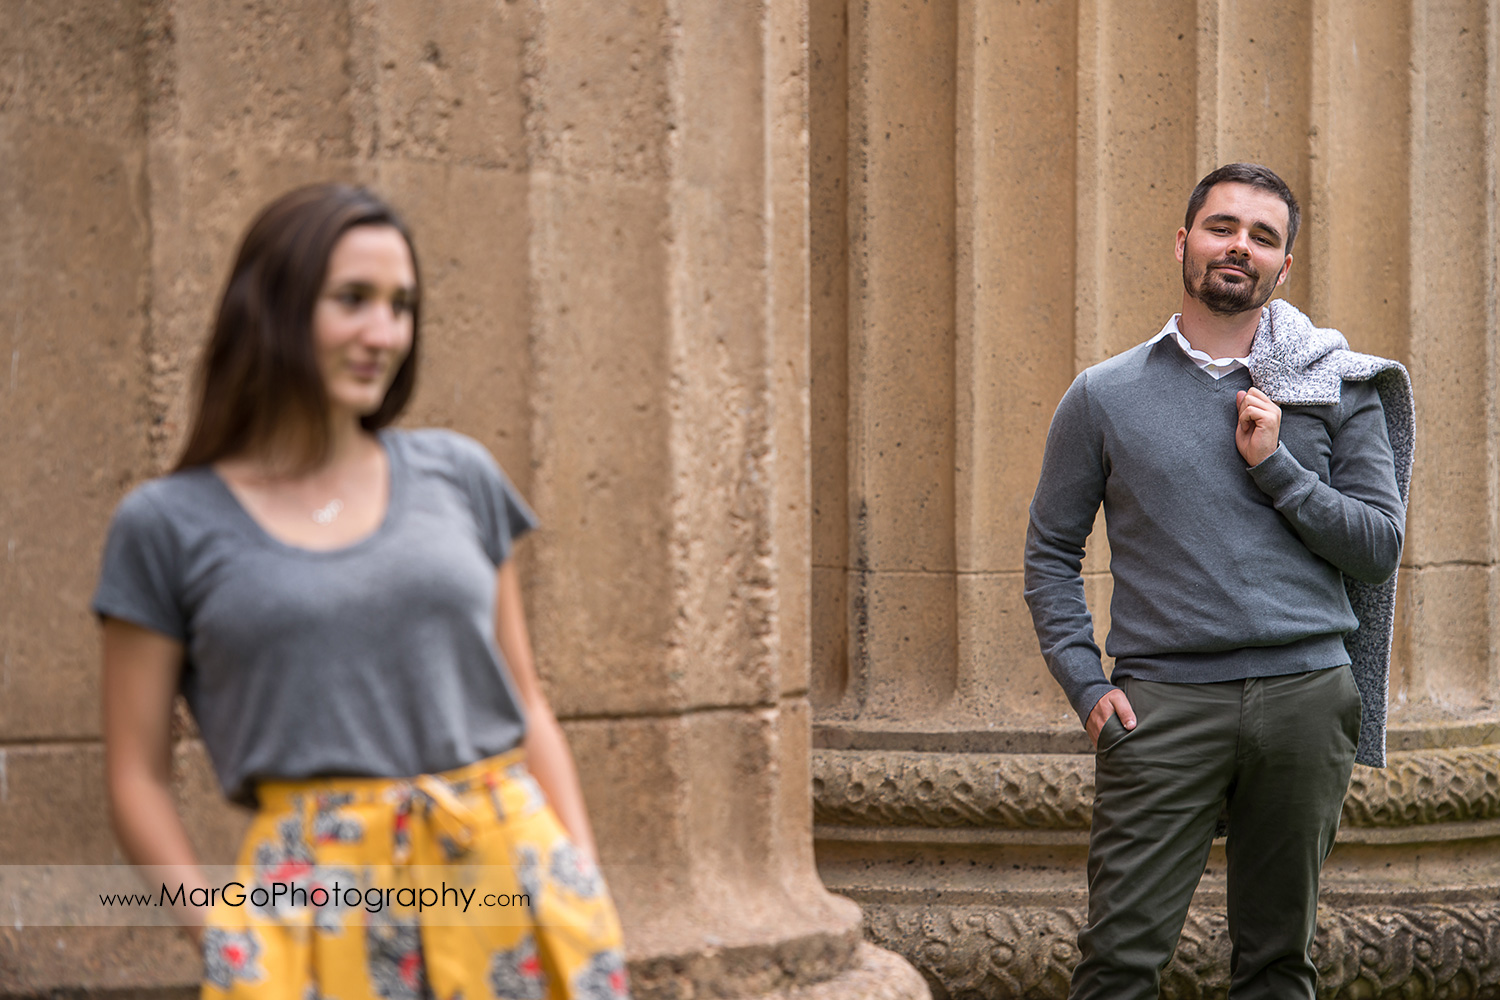 engagement session at Palace of Fine Arts in San Francisco - focus on man